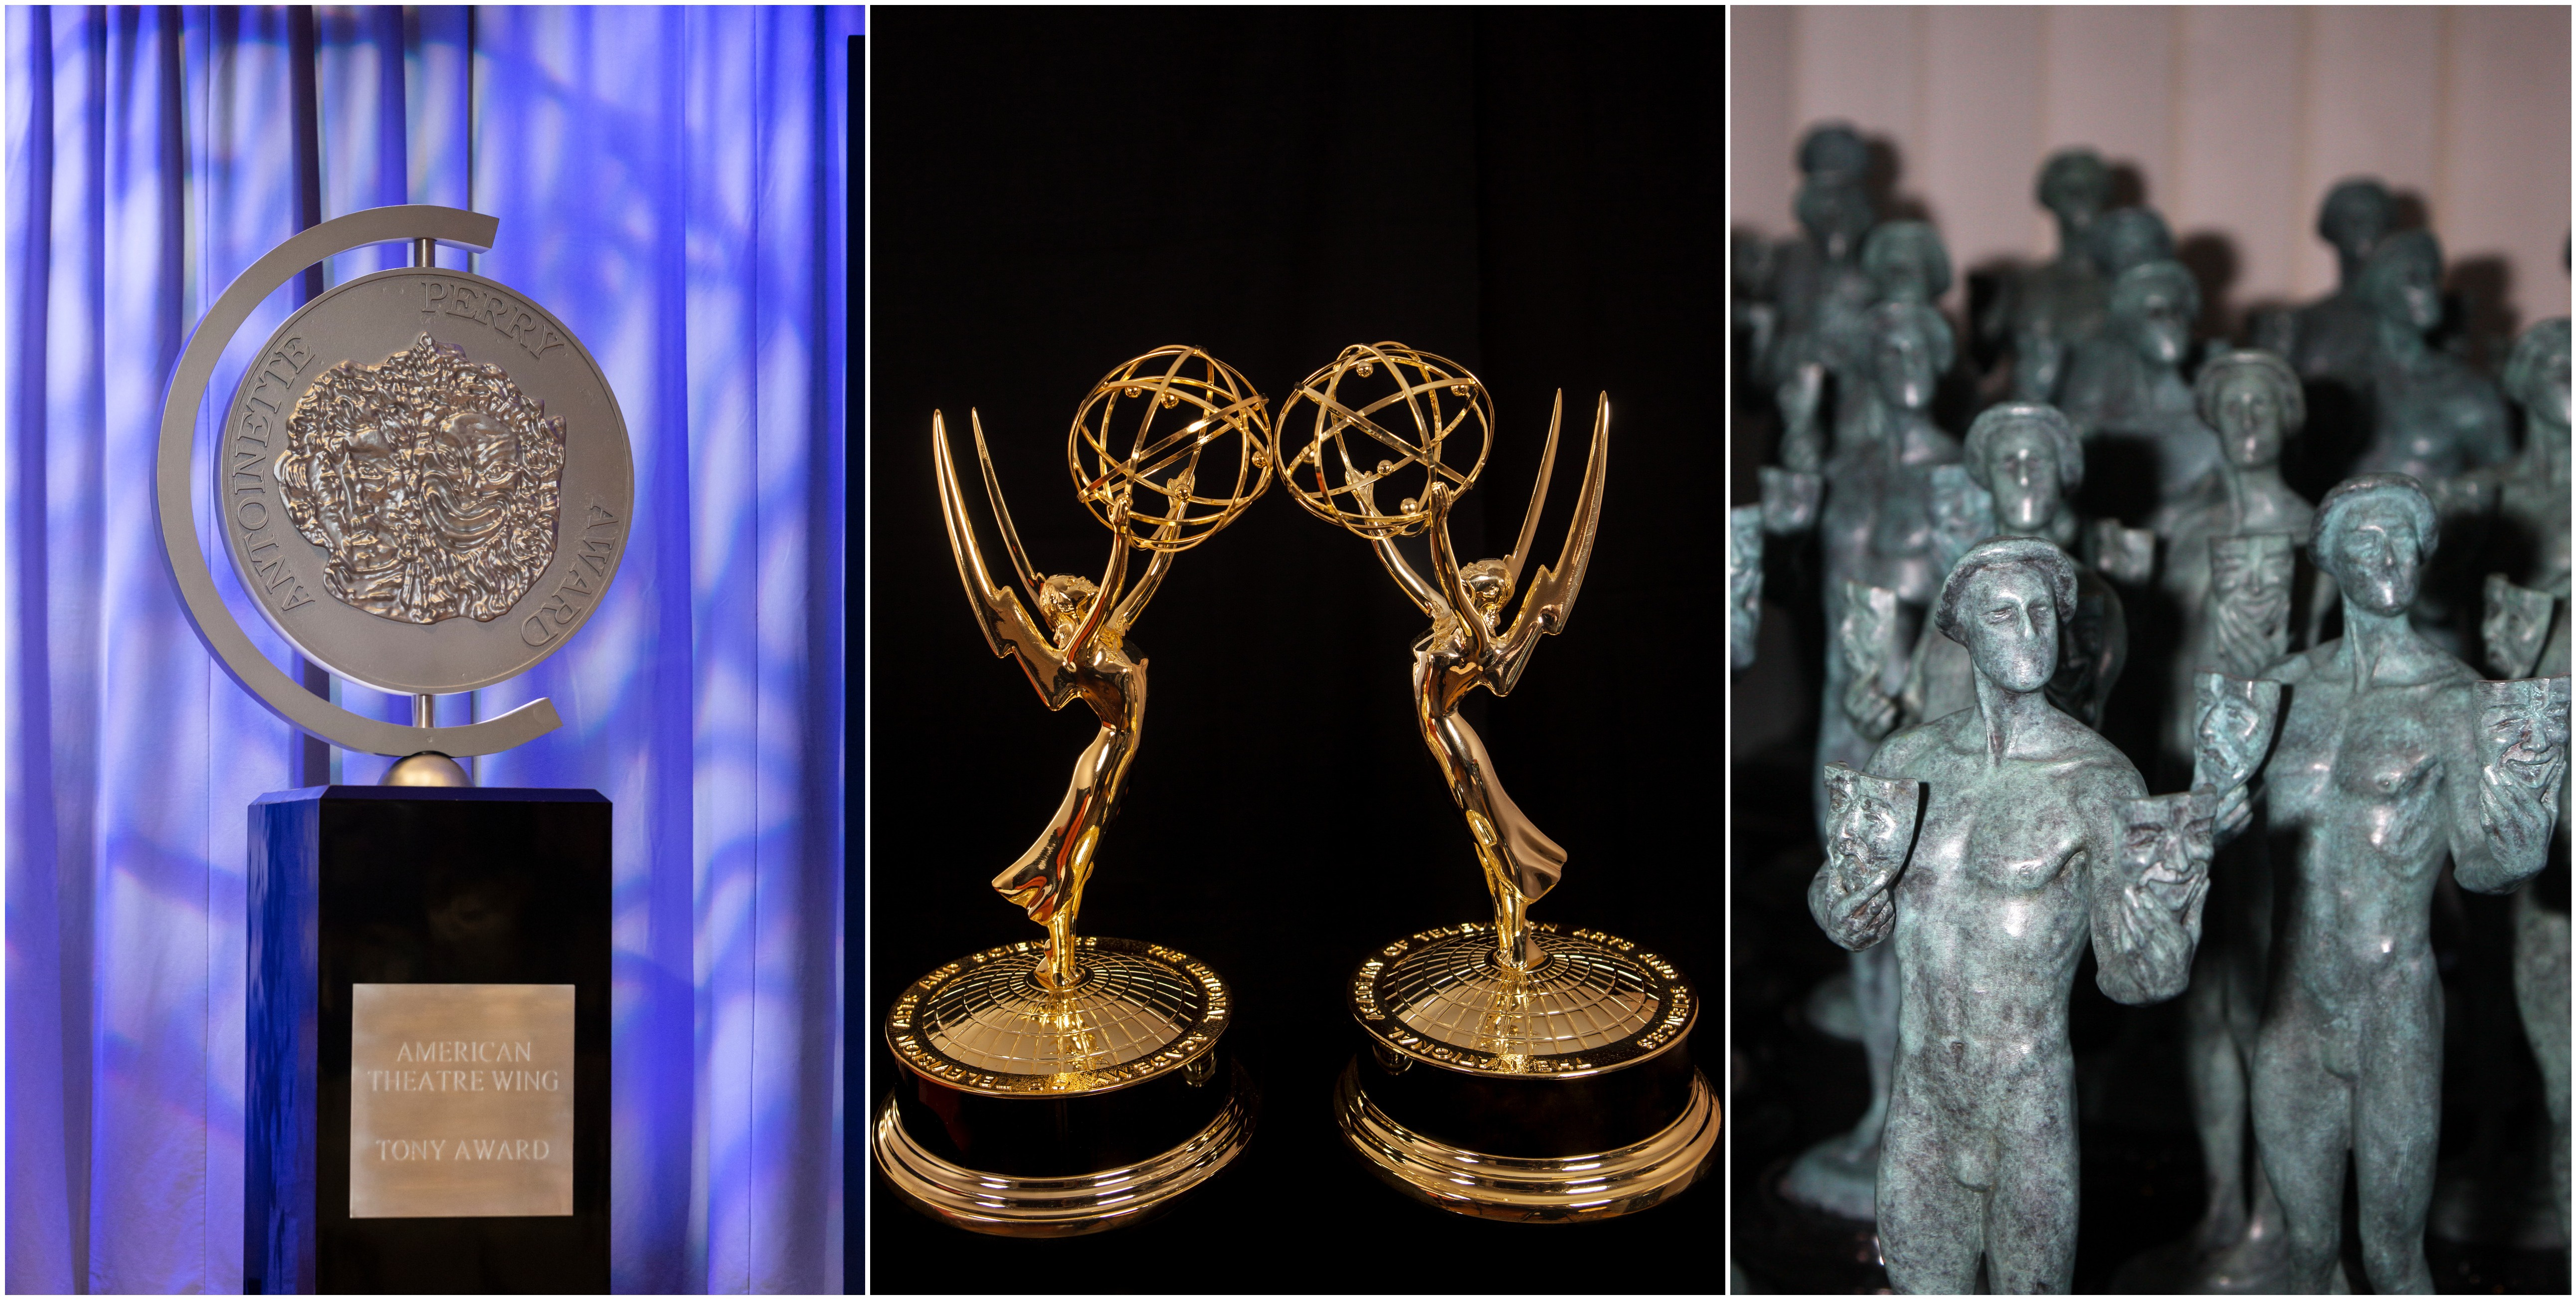 An Updated List of Awards Shows Canceled or Postponed Due to COVID-19